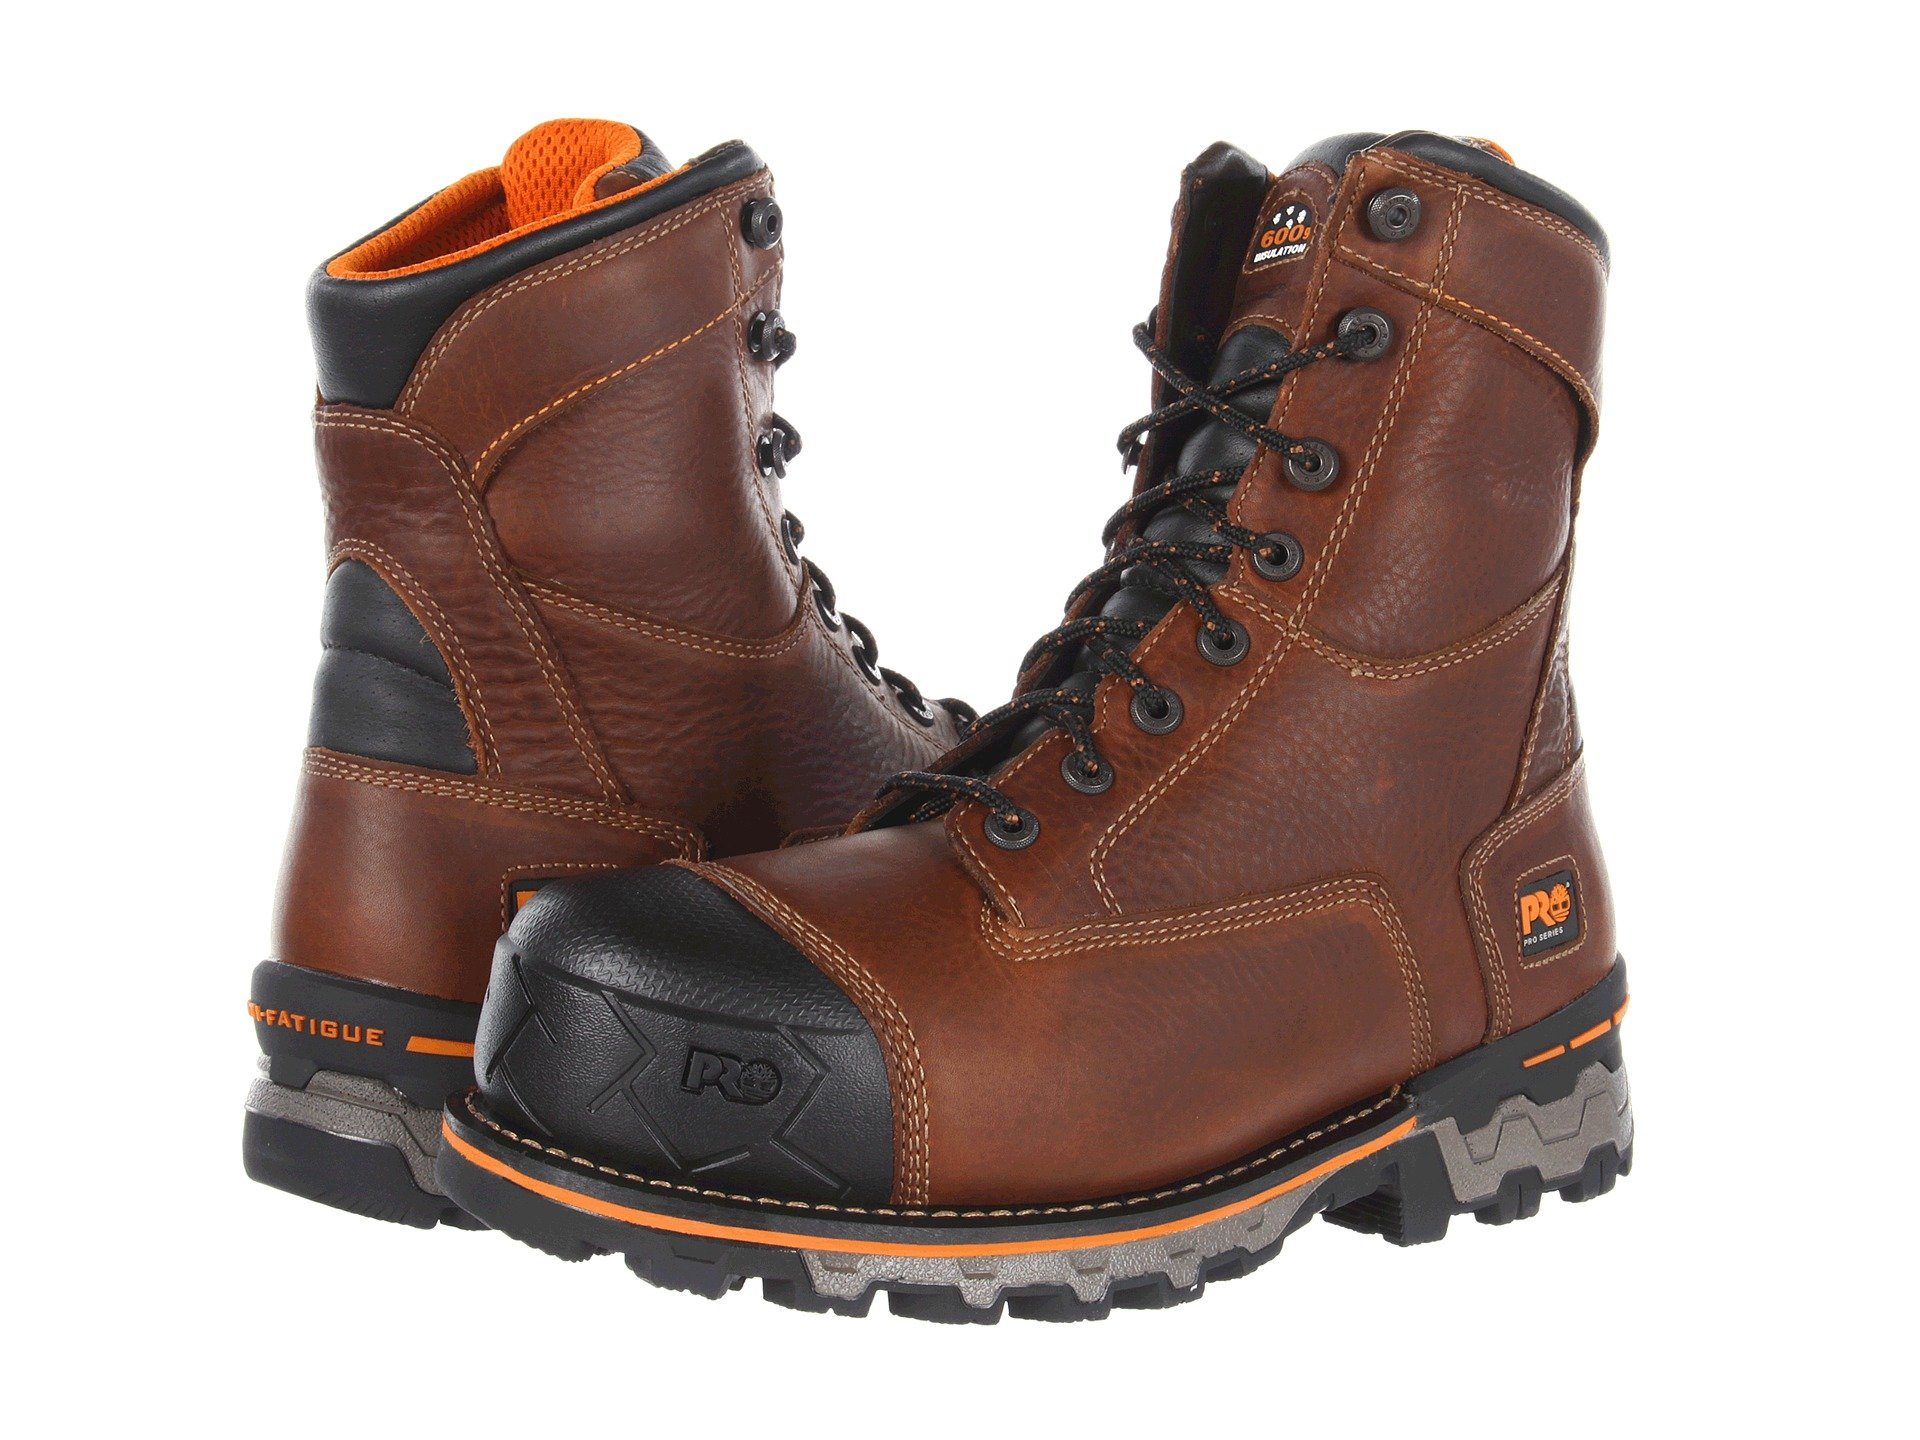 Zoom Timberland PRO Boondock WP Insulated Soft Toe